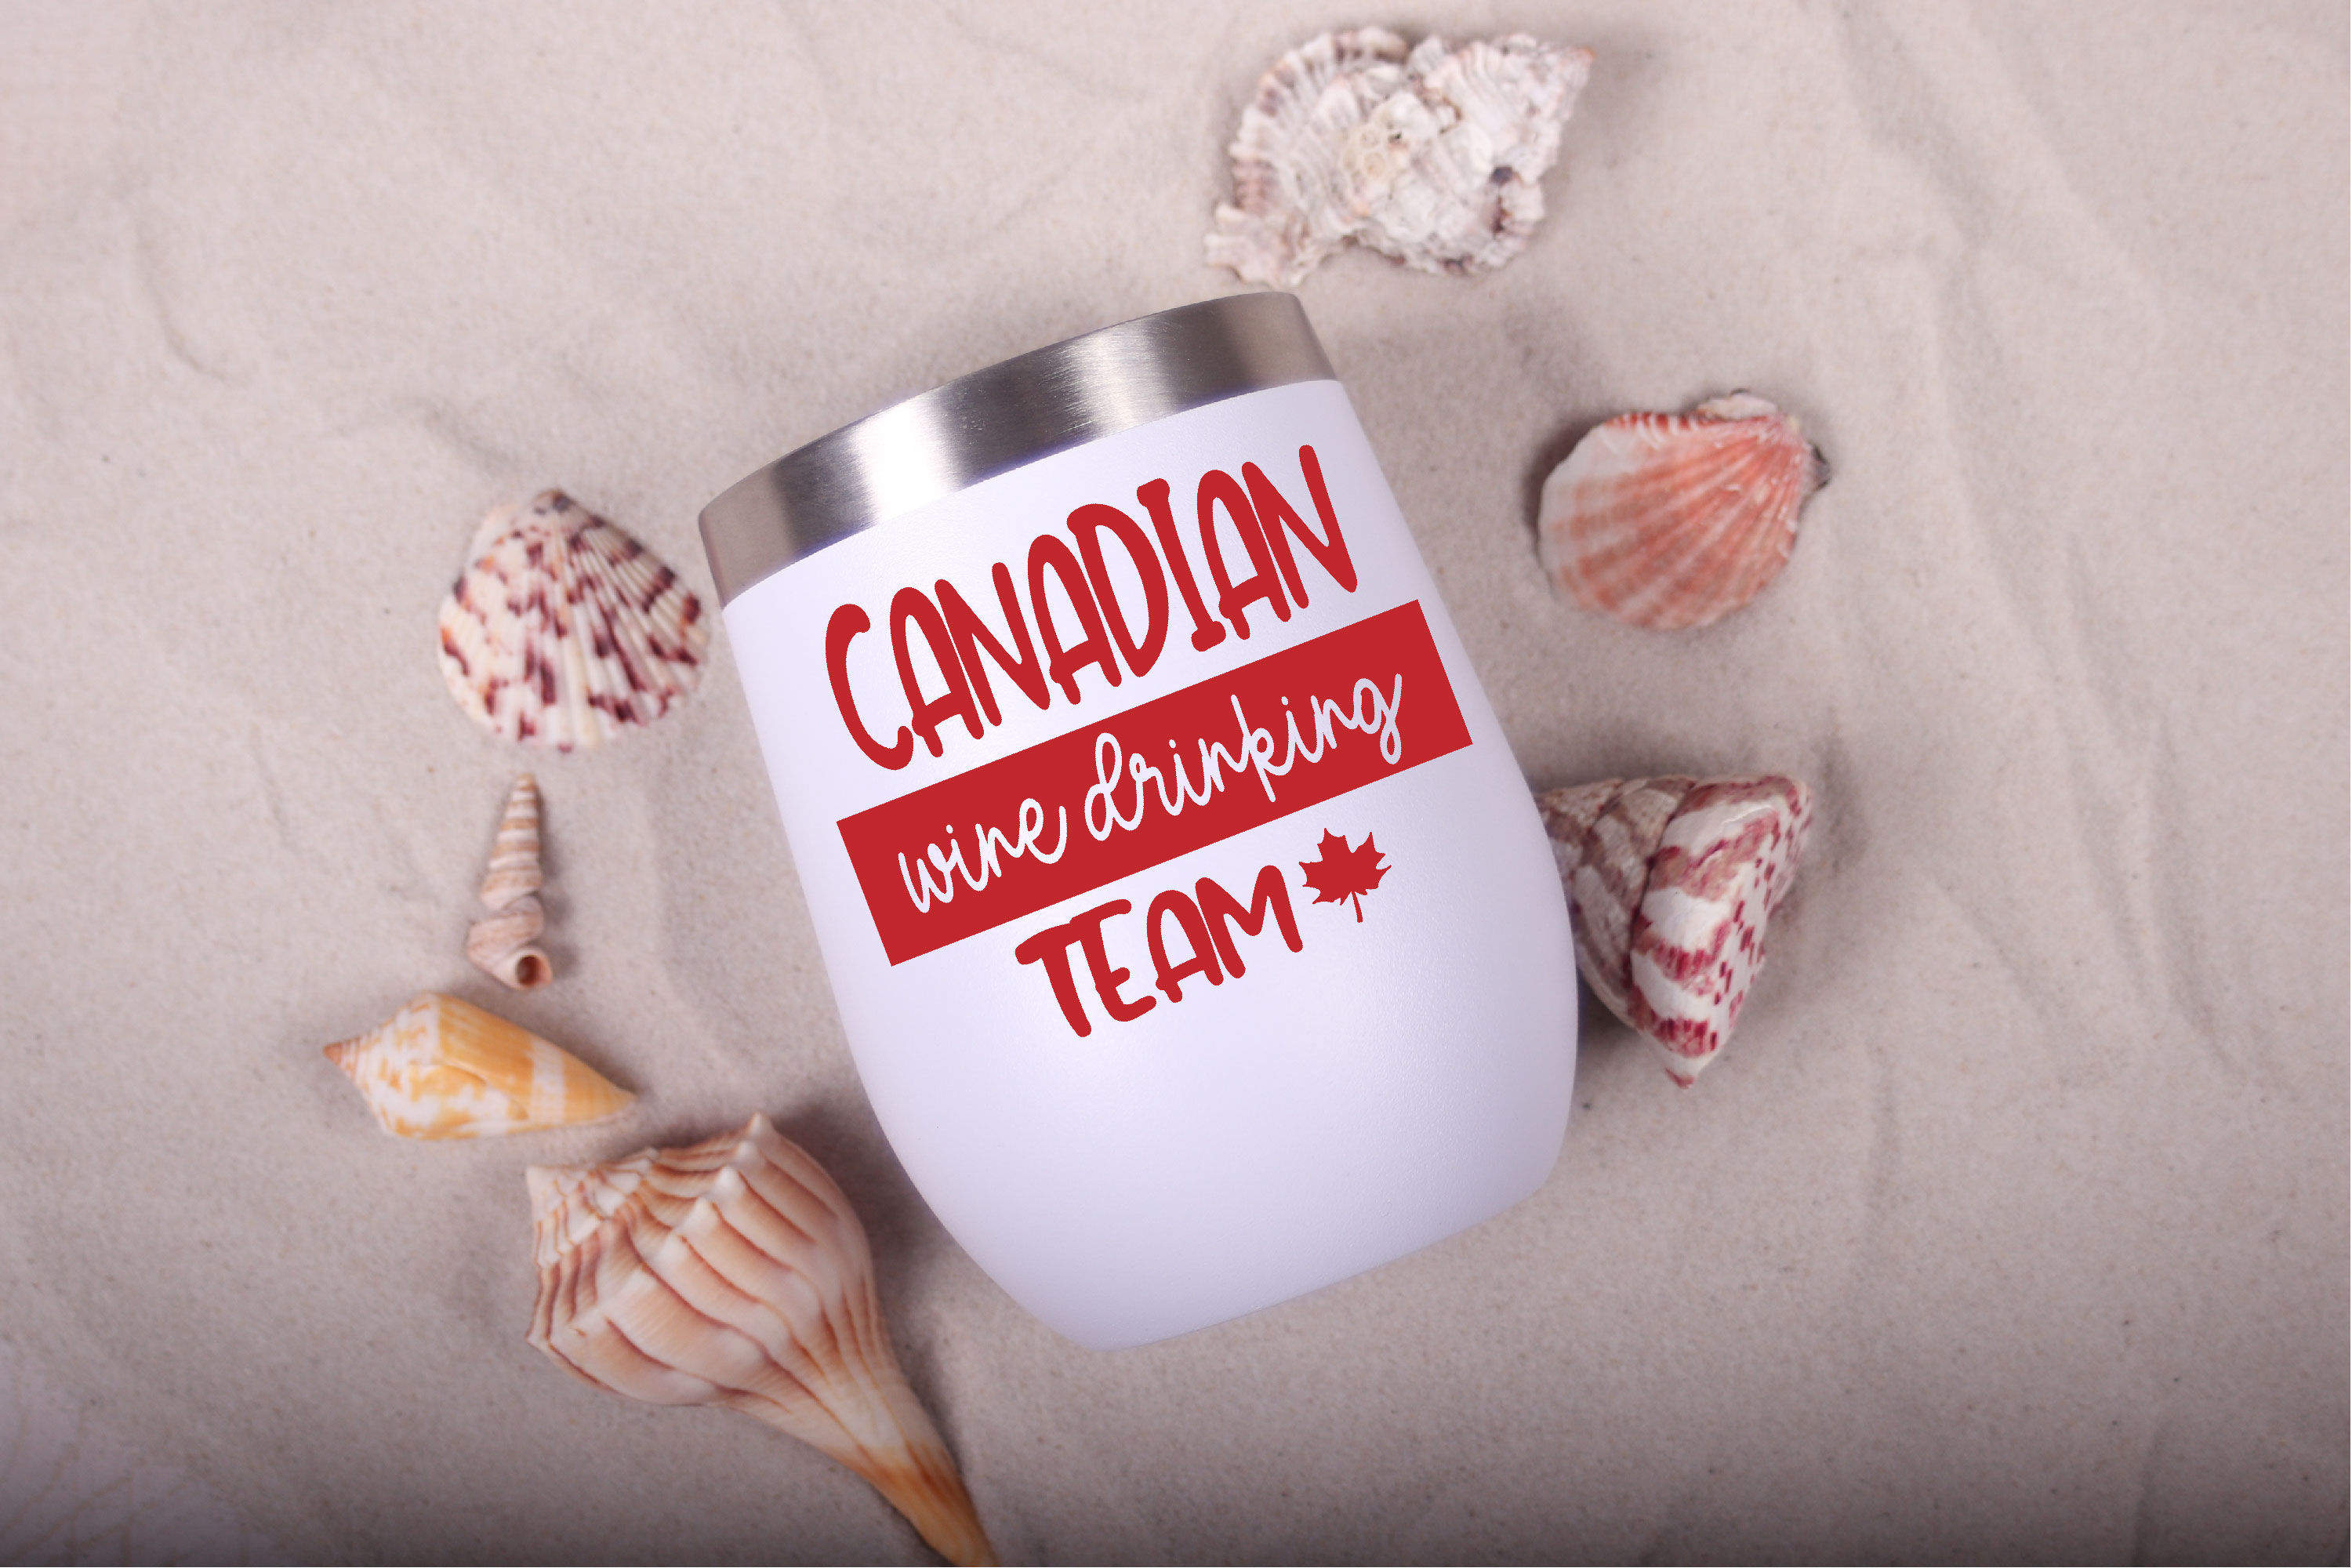 Canadian Wine Drinking Team Drinking Graphic By Onceuponadimeyxe